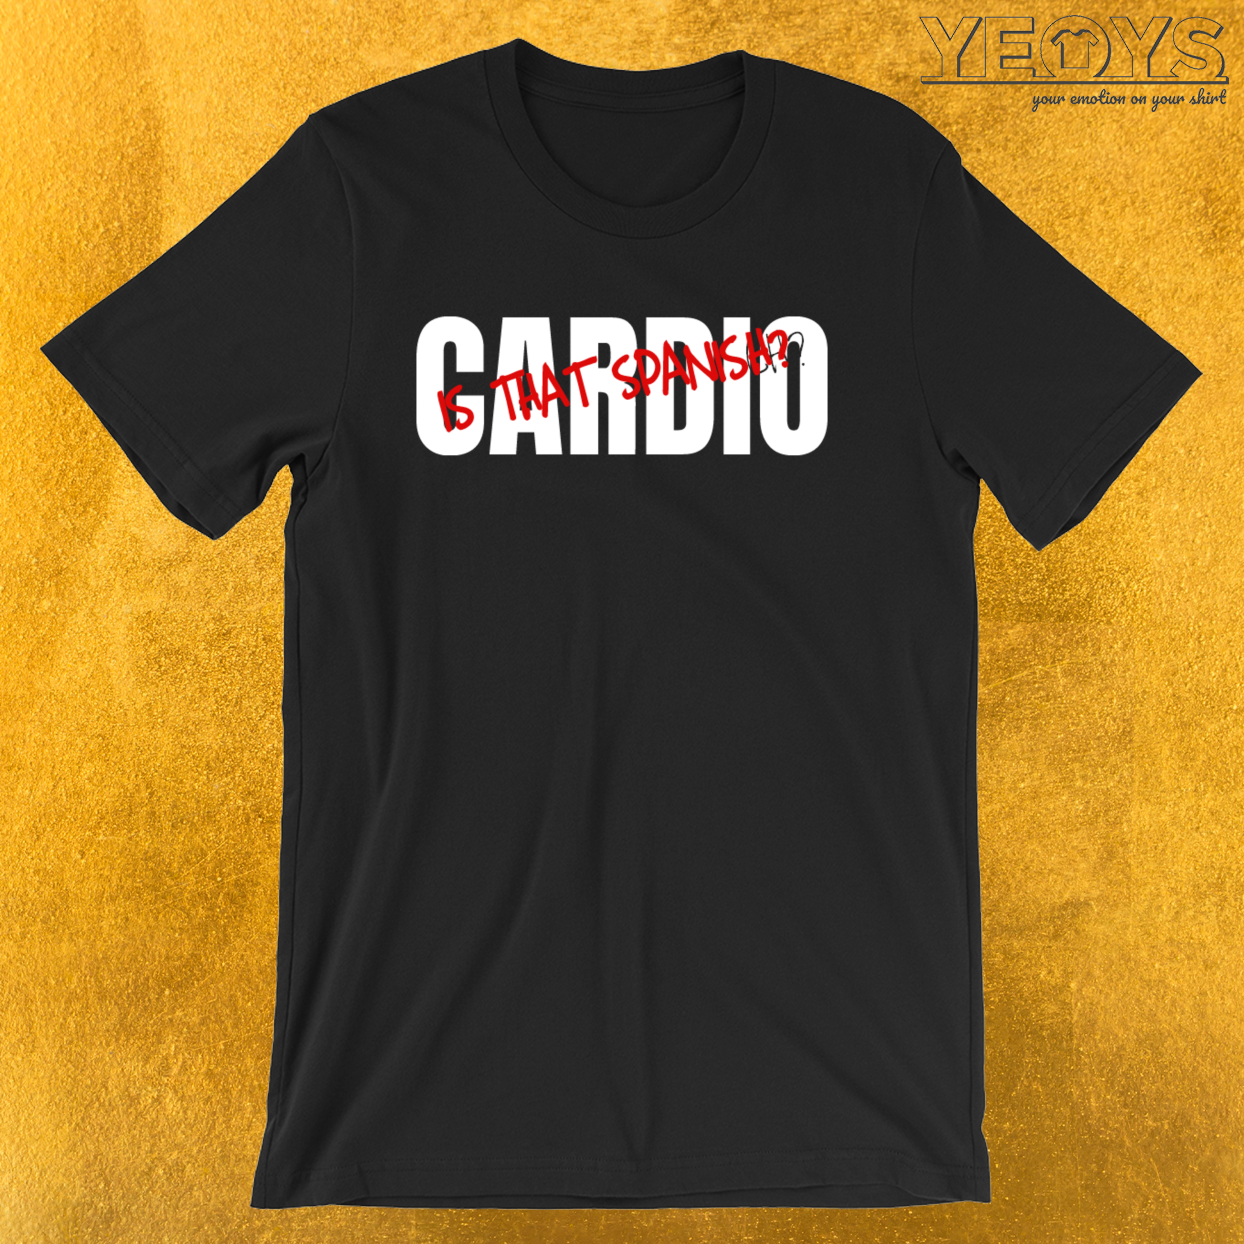 Cardio Is that Spanish – Cardio Tee